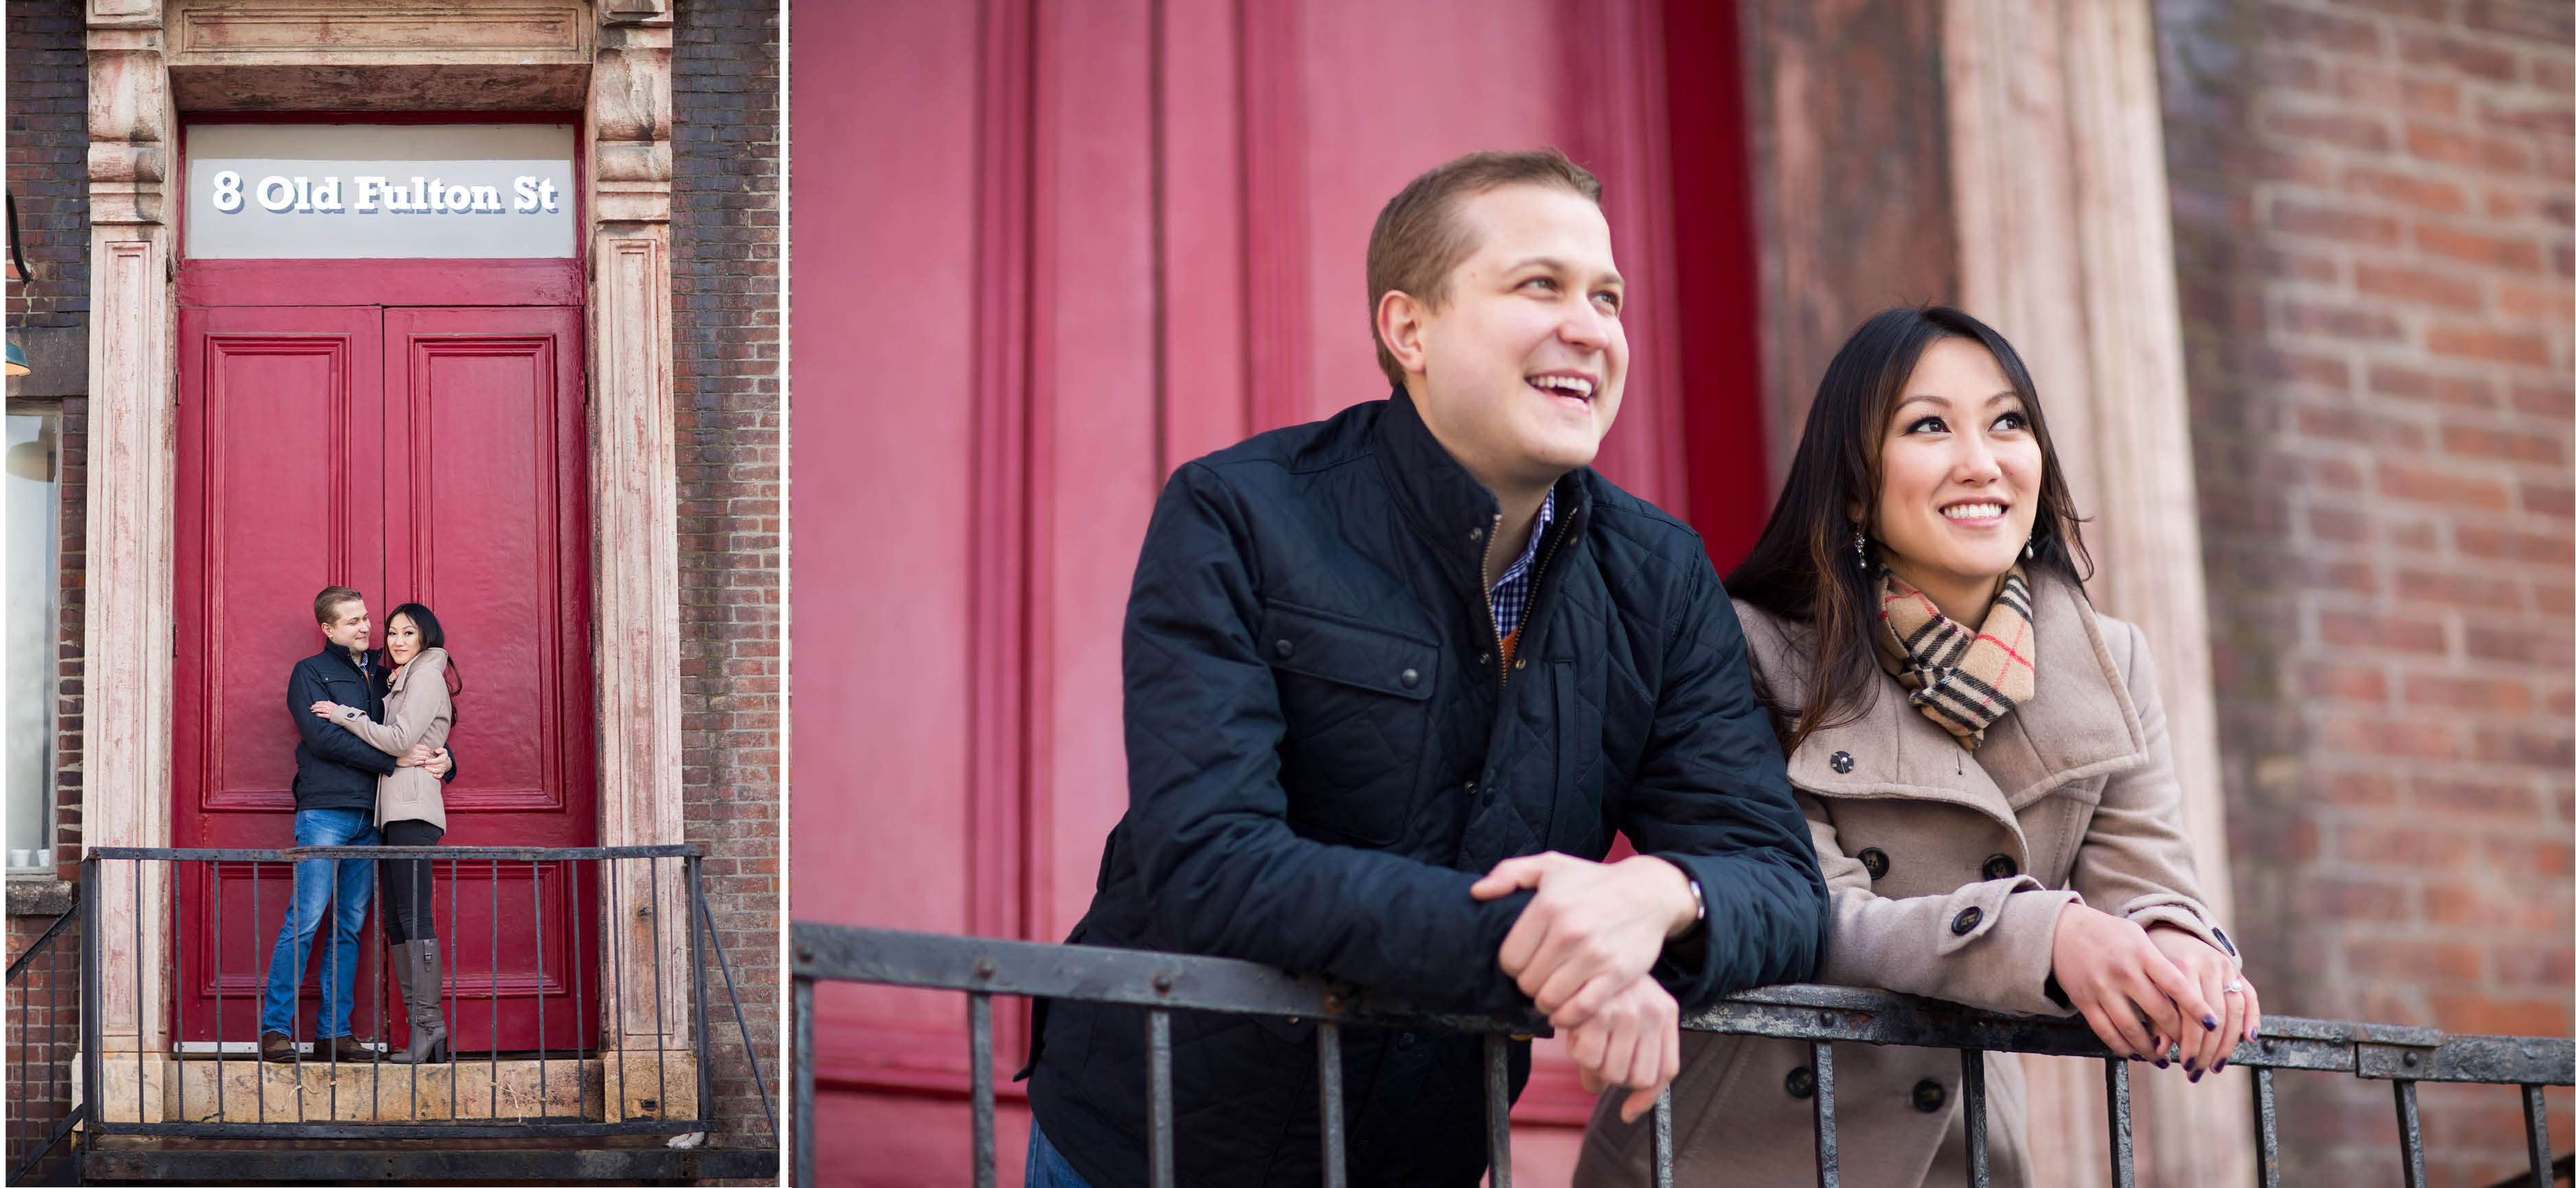 Emma_cleary_photography dumbo engagement14